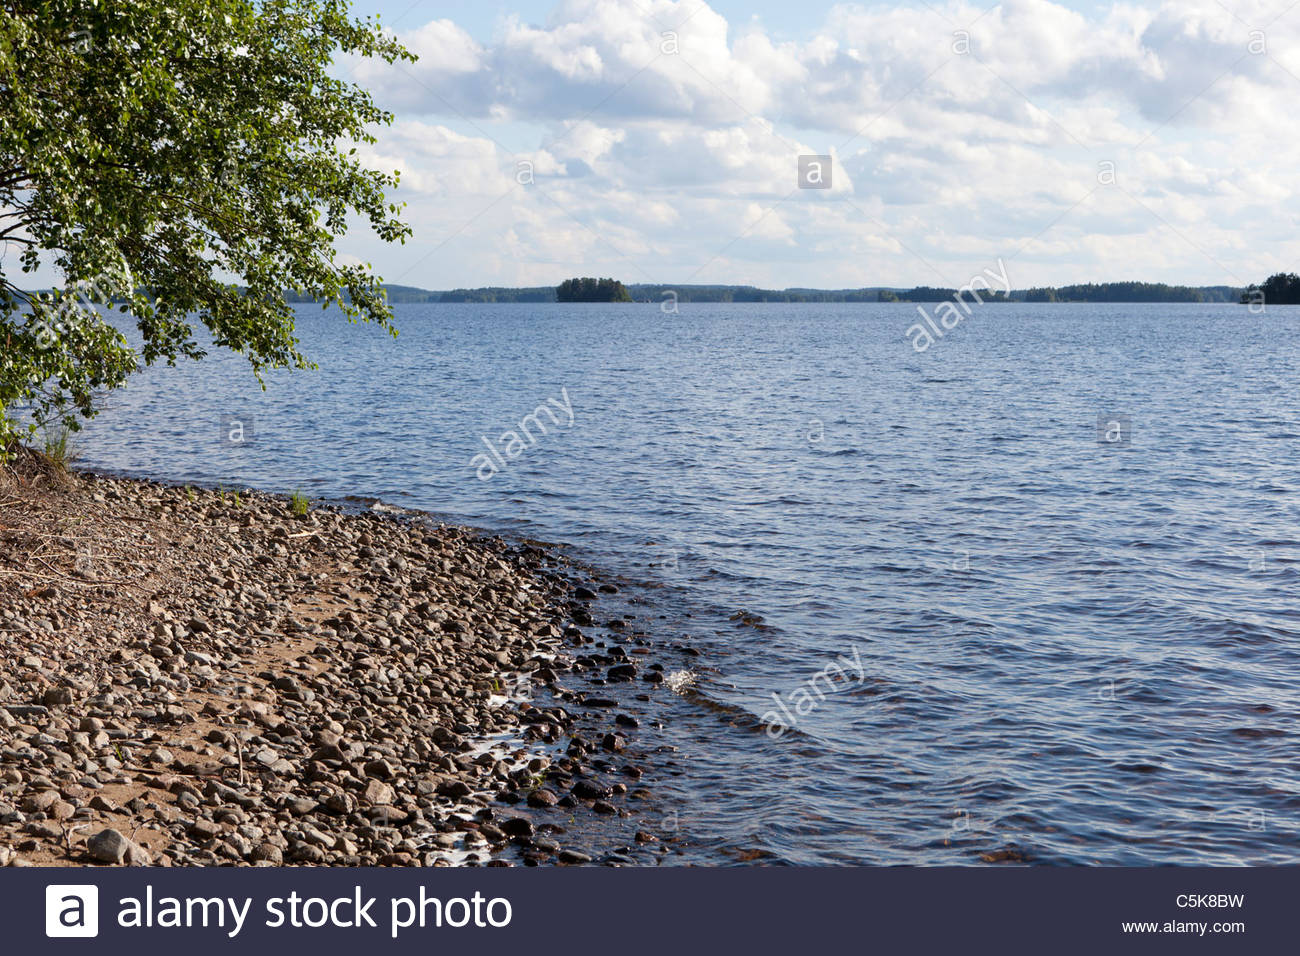 Lake view in Finland. Stock Photo